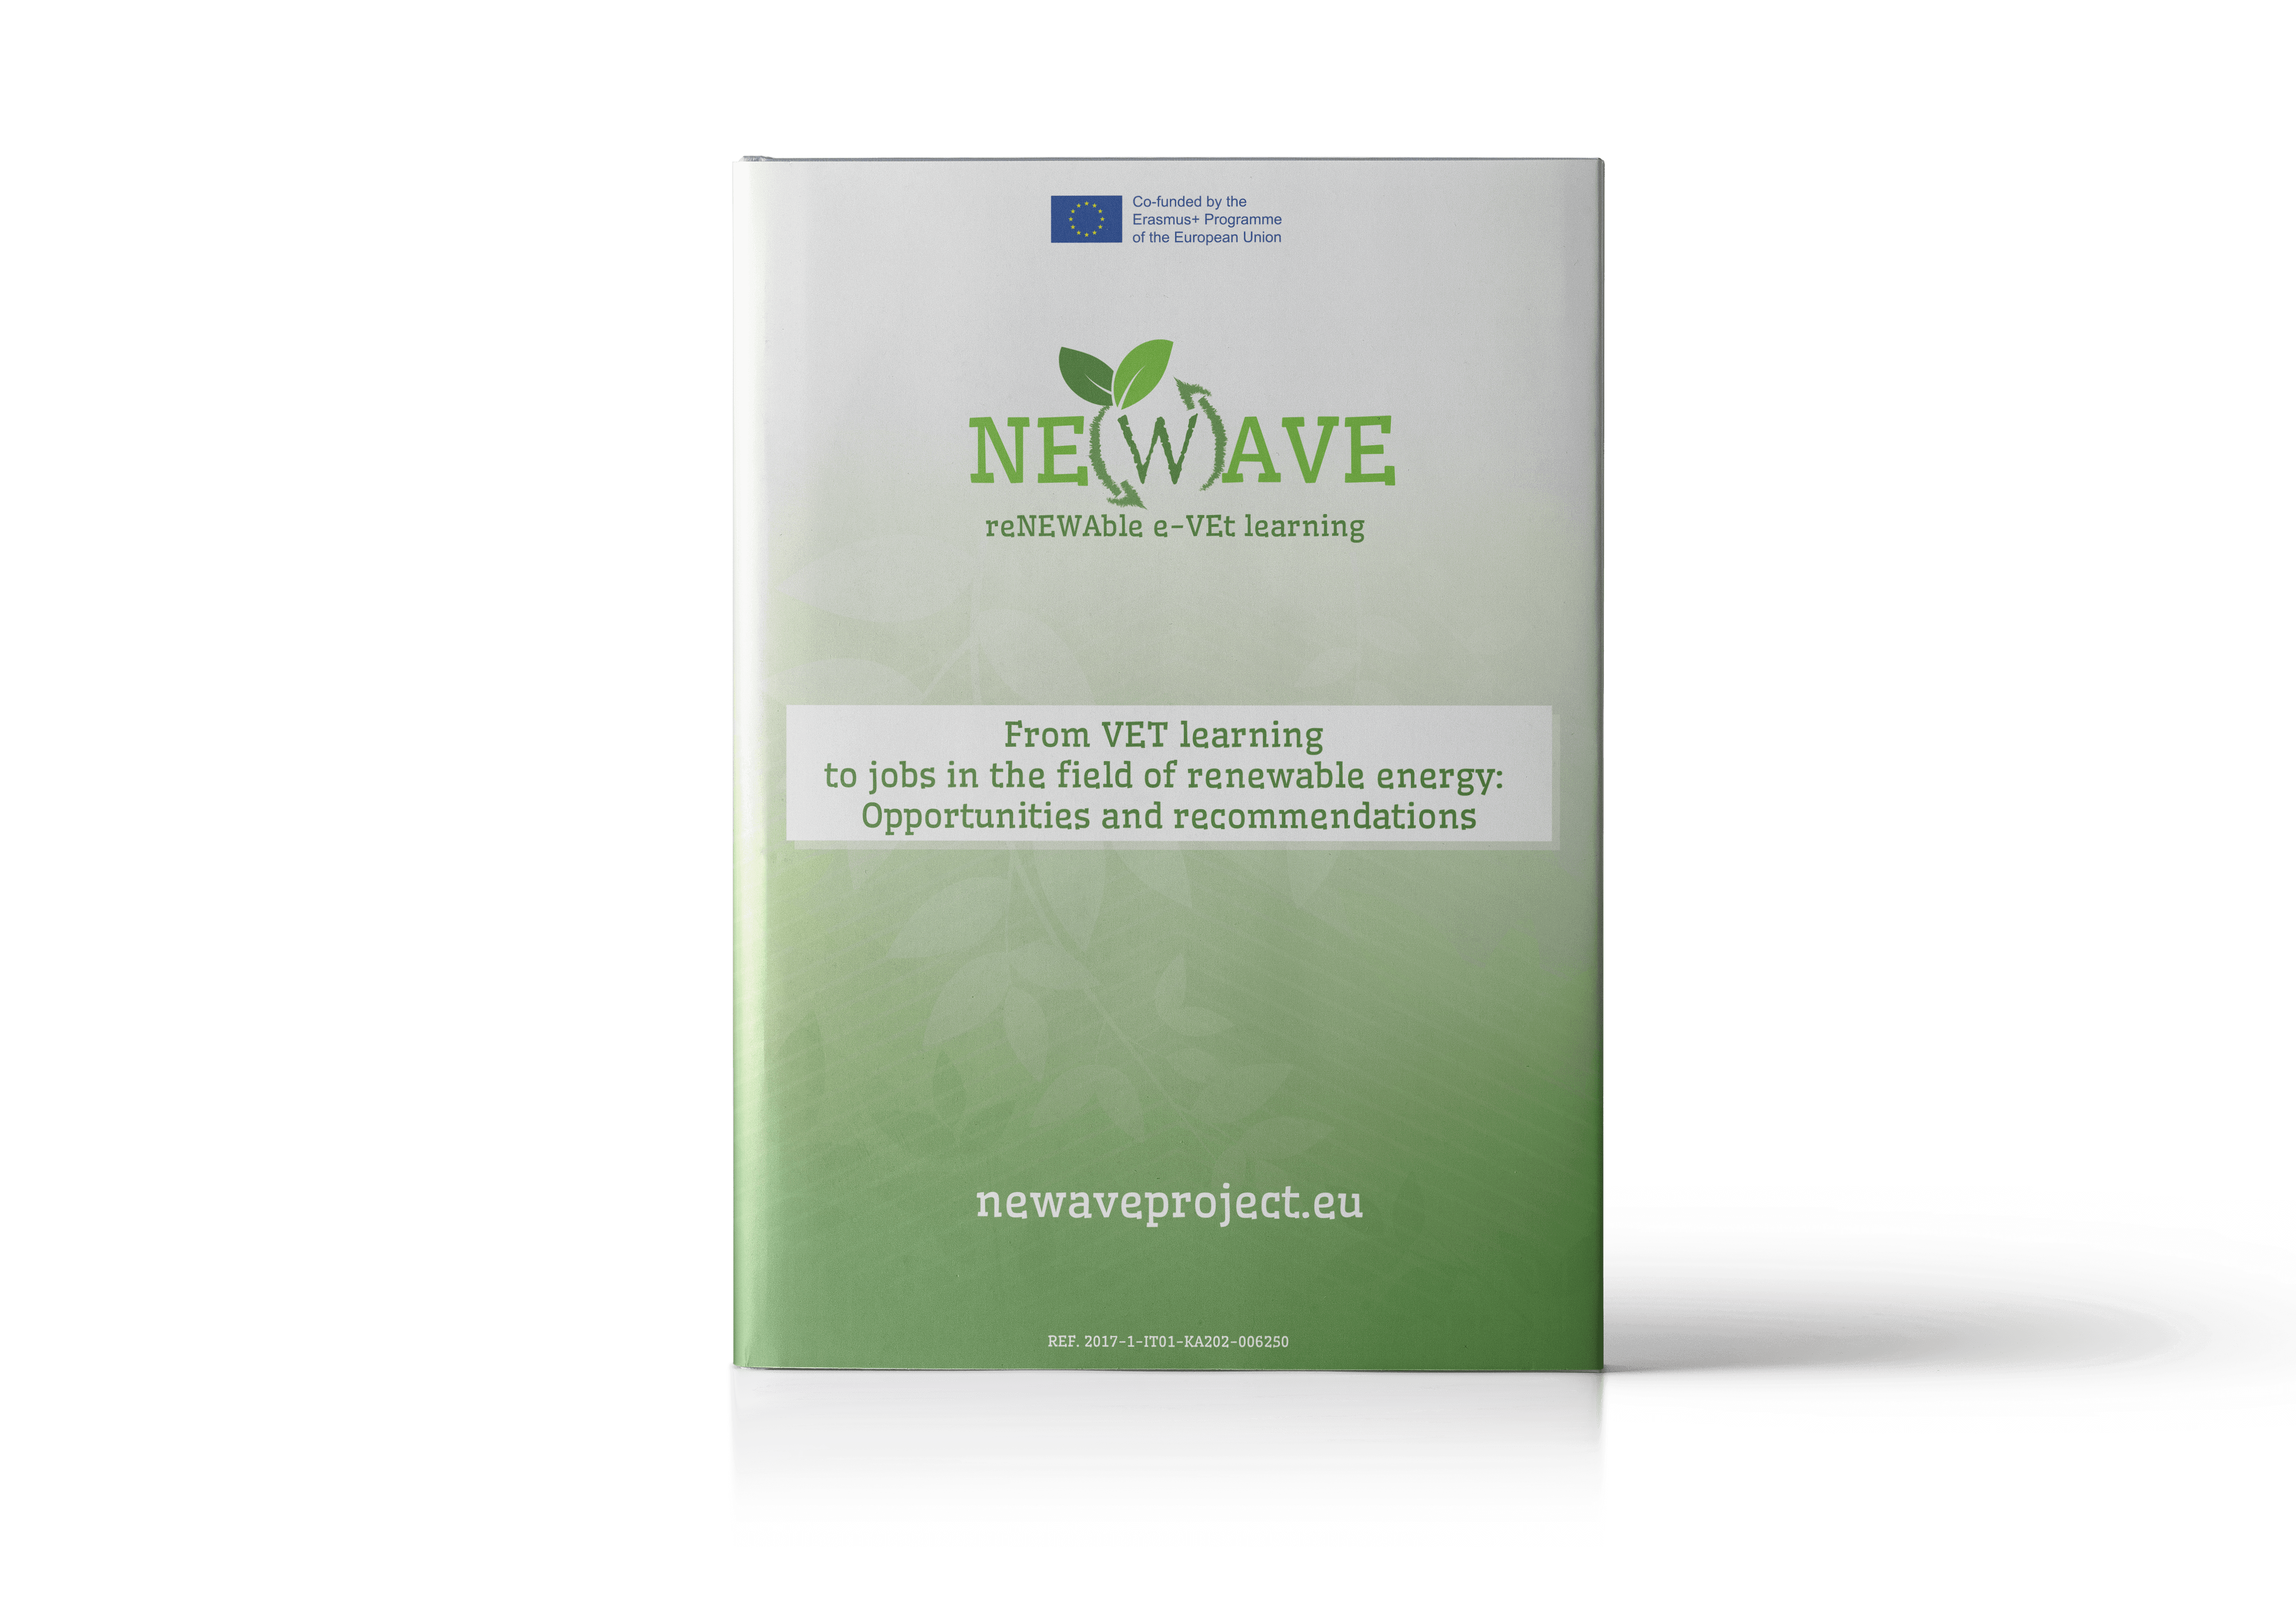 COVER raccom inglese progetto newave